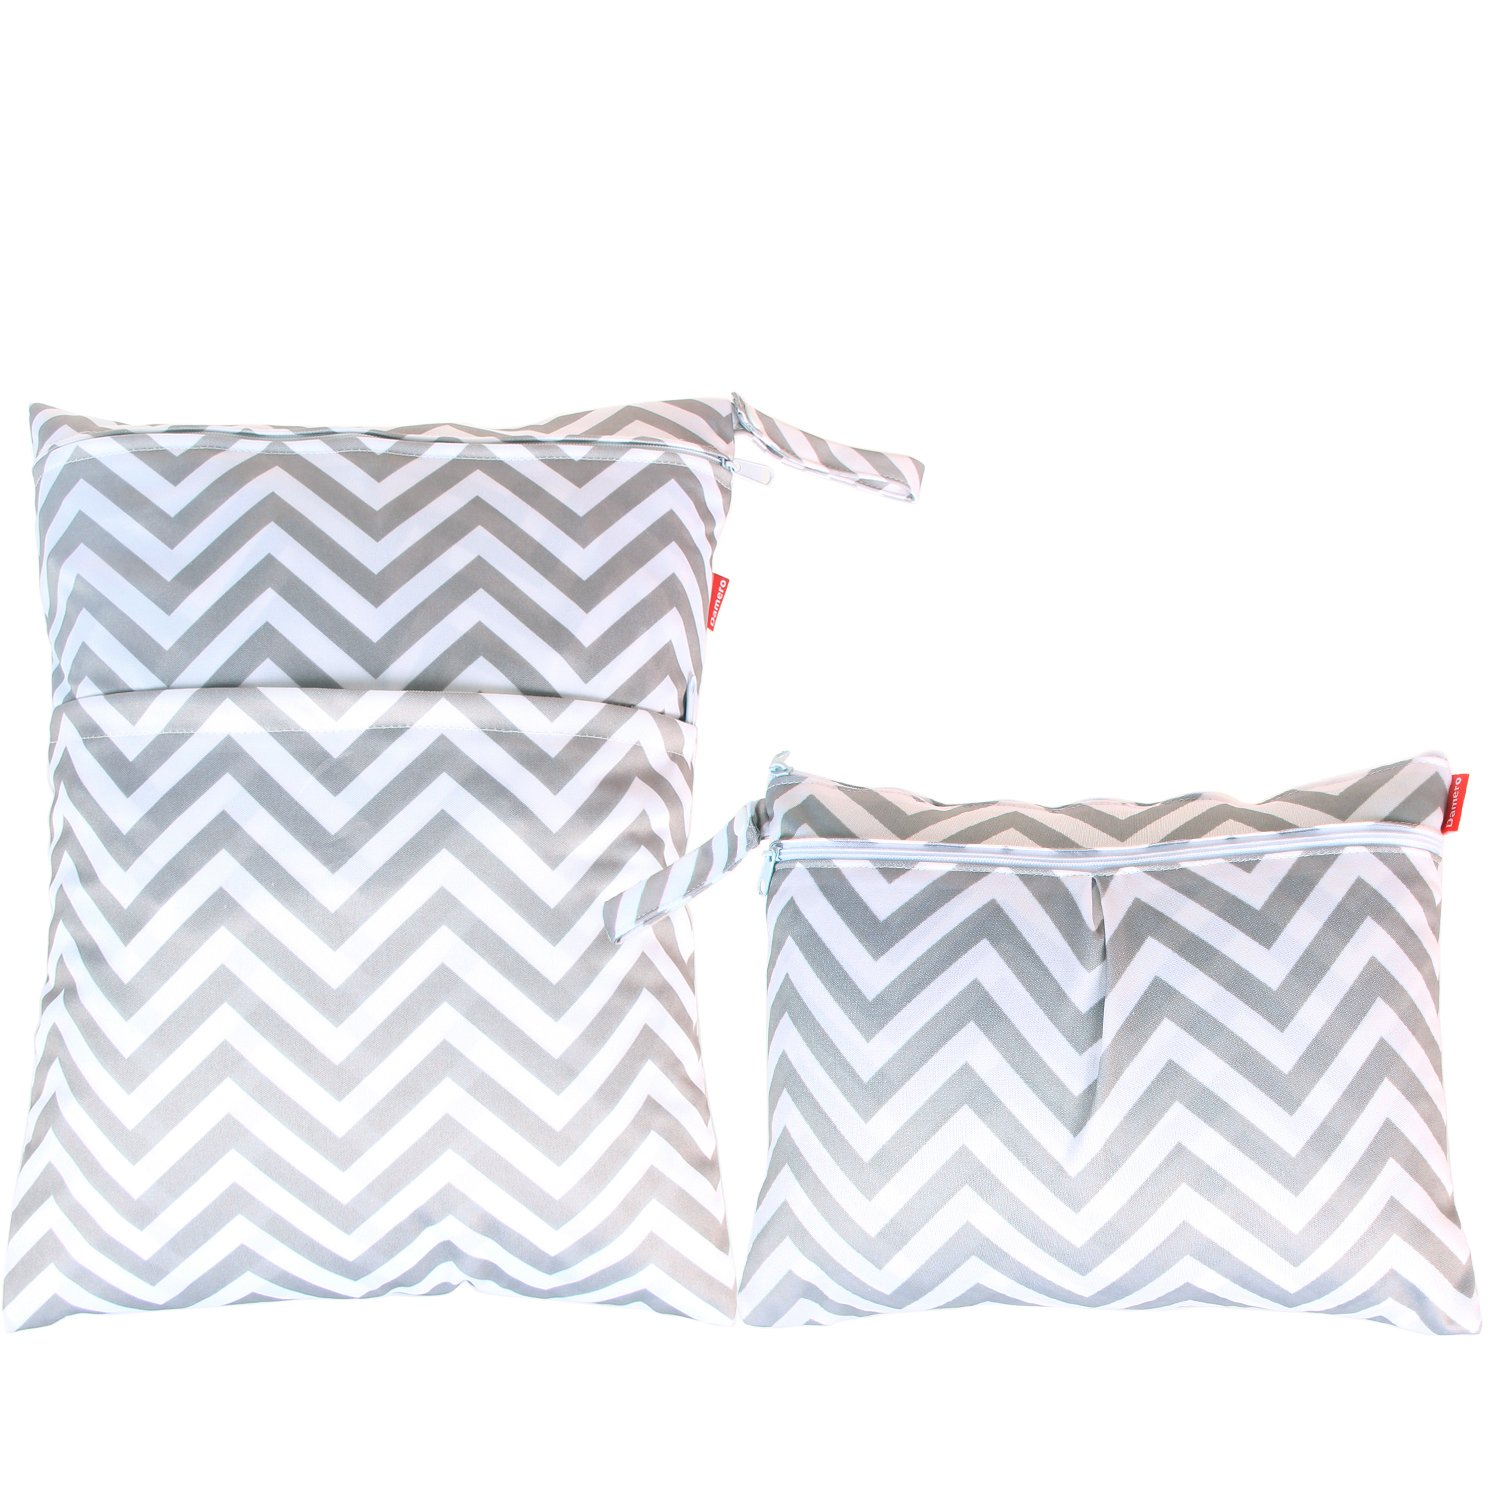 Damero 2pcs Pack Travel Baby Wet and Dry Cloth Diaper Organiser Bag, Gray Chevron Damai